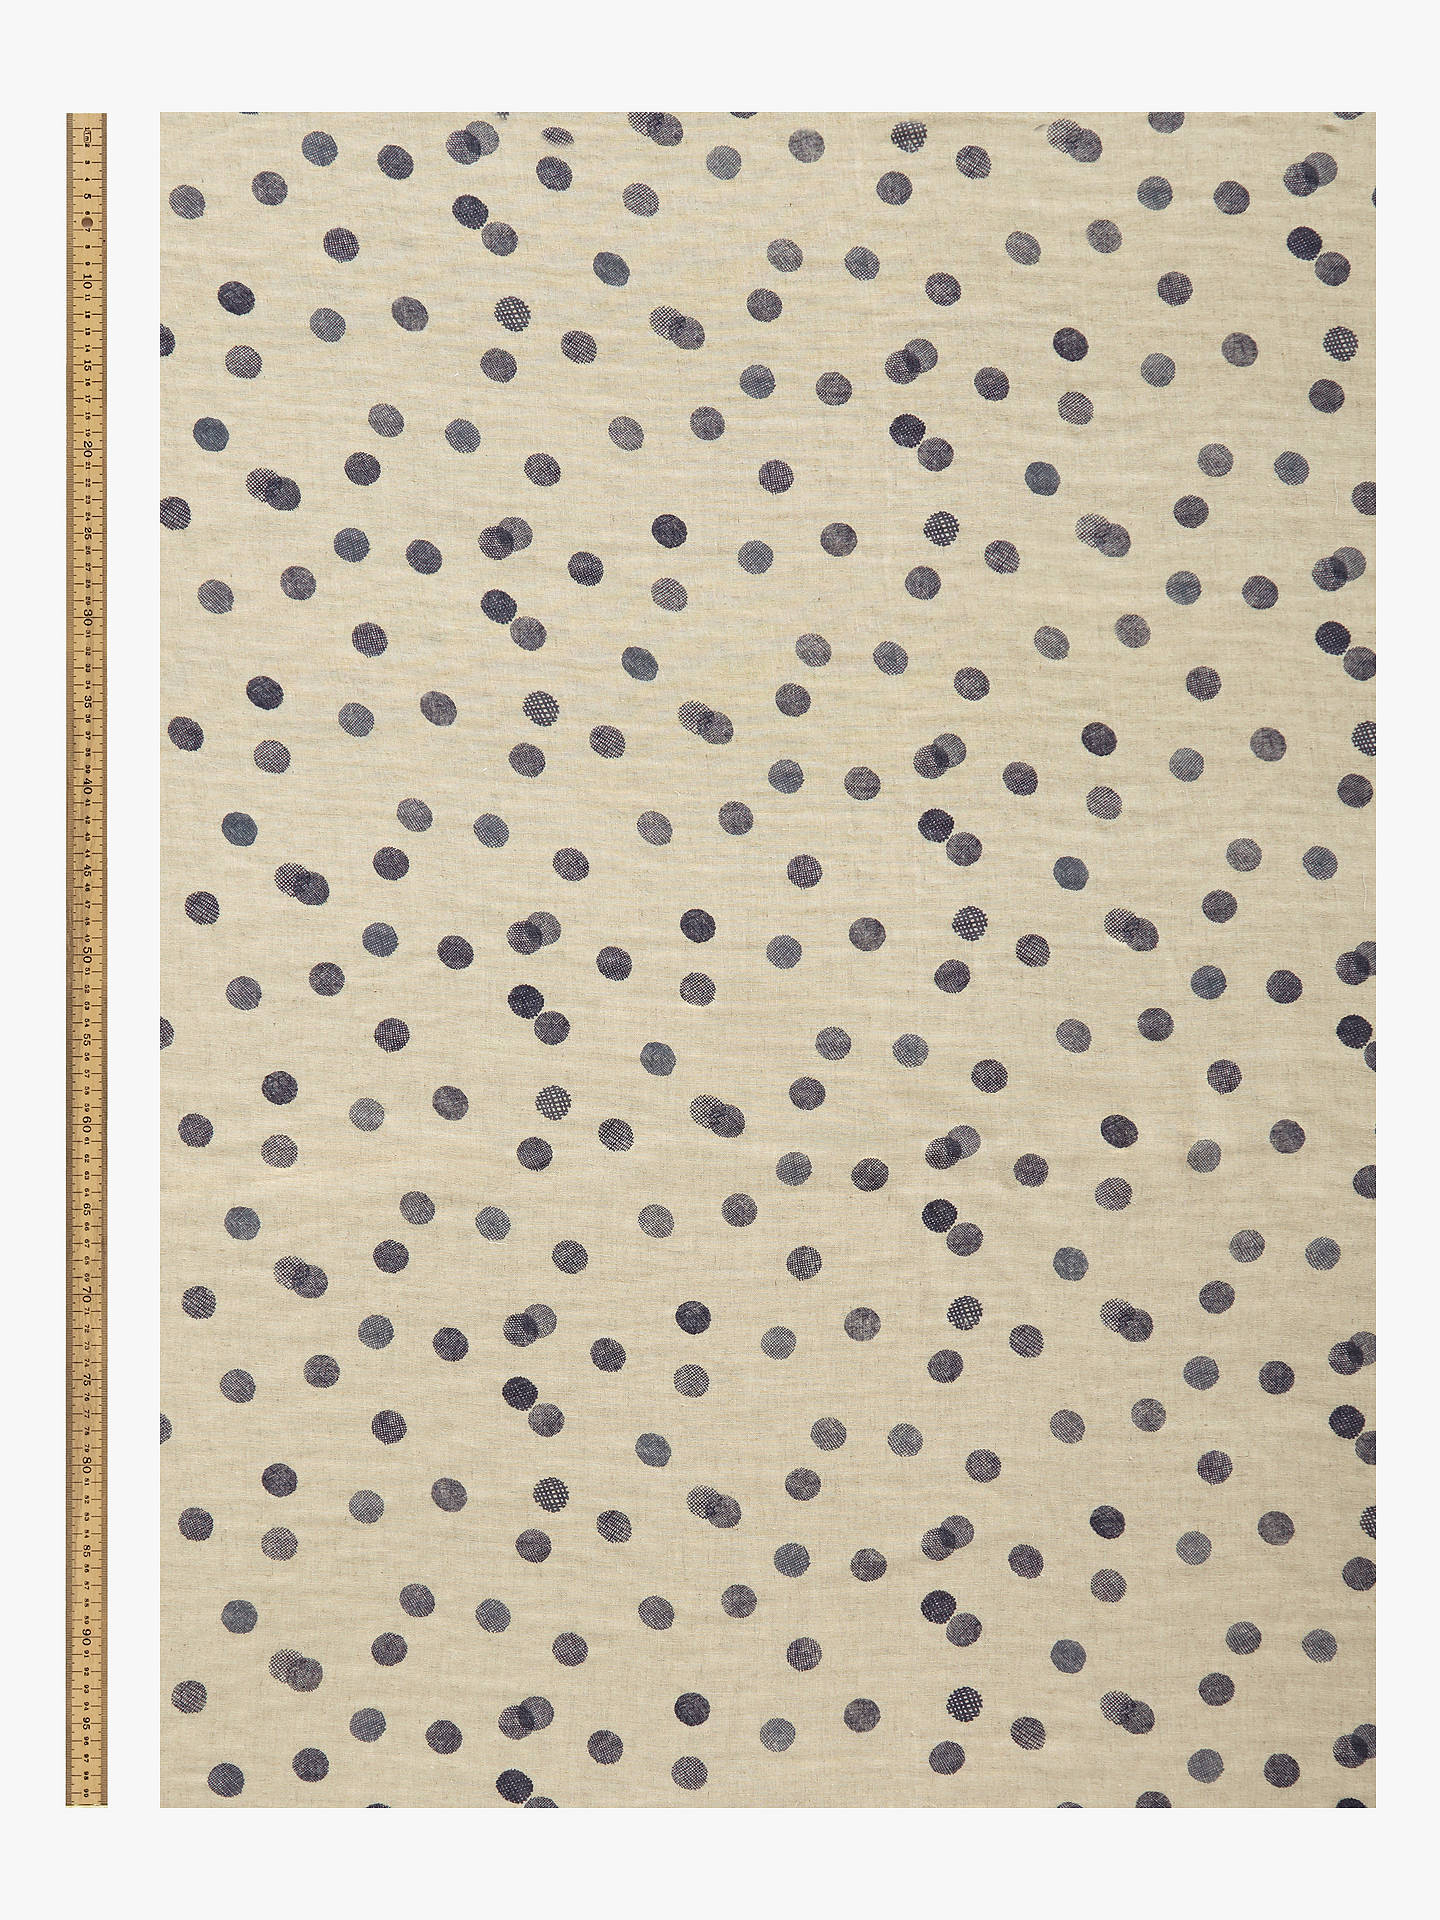 Buy Kokka Denim Texture Spot Print Fabric, Cream/Blue Online at johnlewis.com